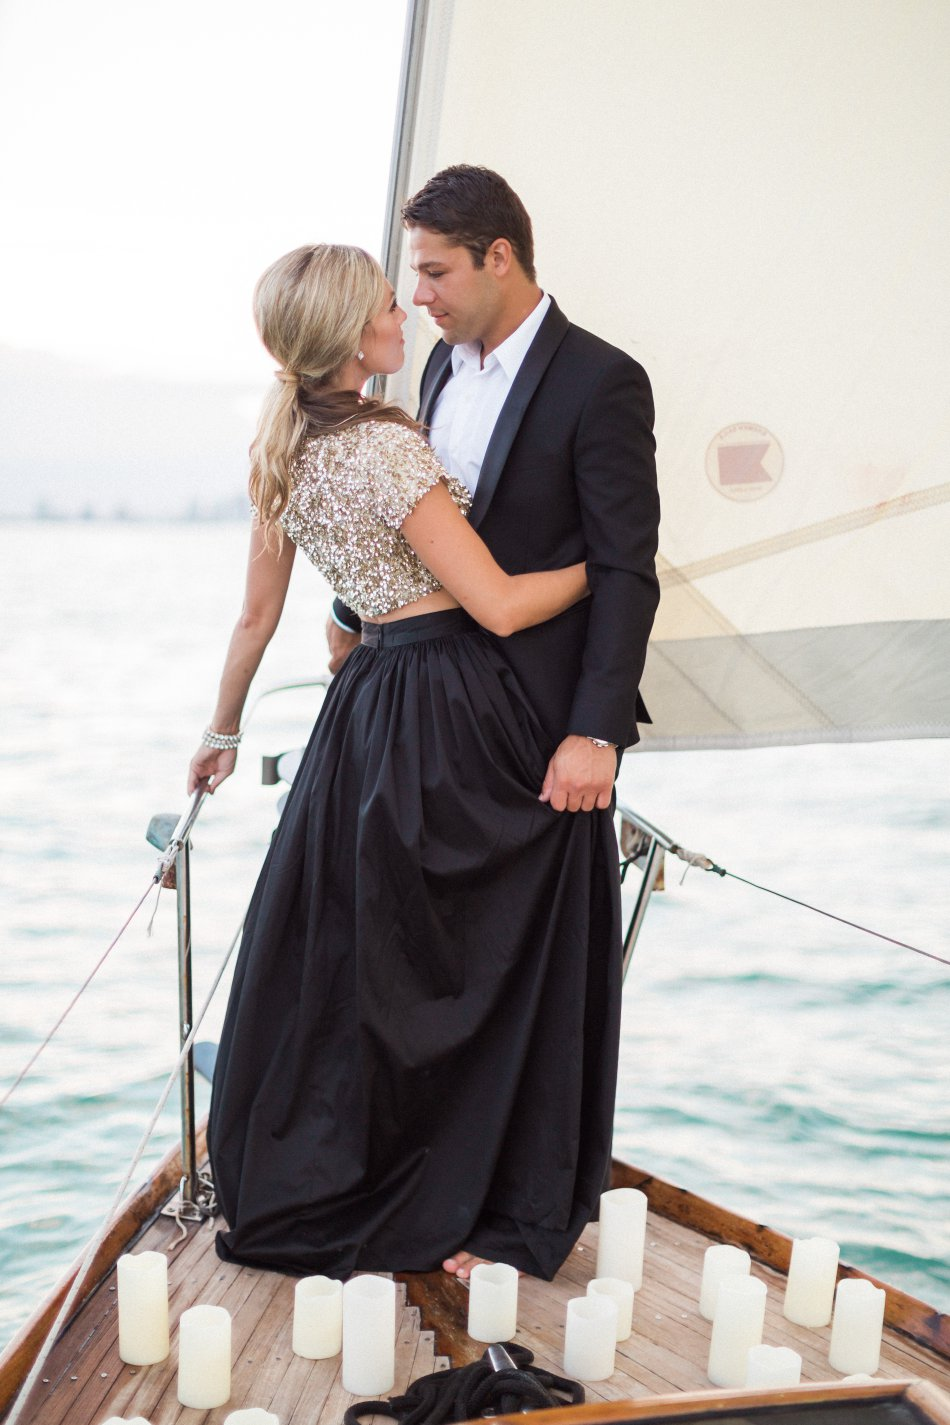 naples-luxury-sailing-engagement-photography-nautical-sailboat-engagement_1096.jpg